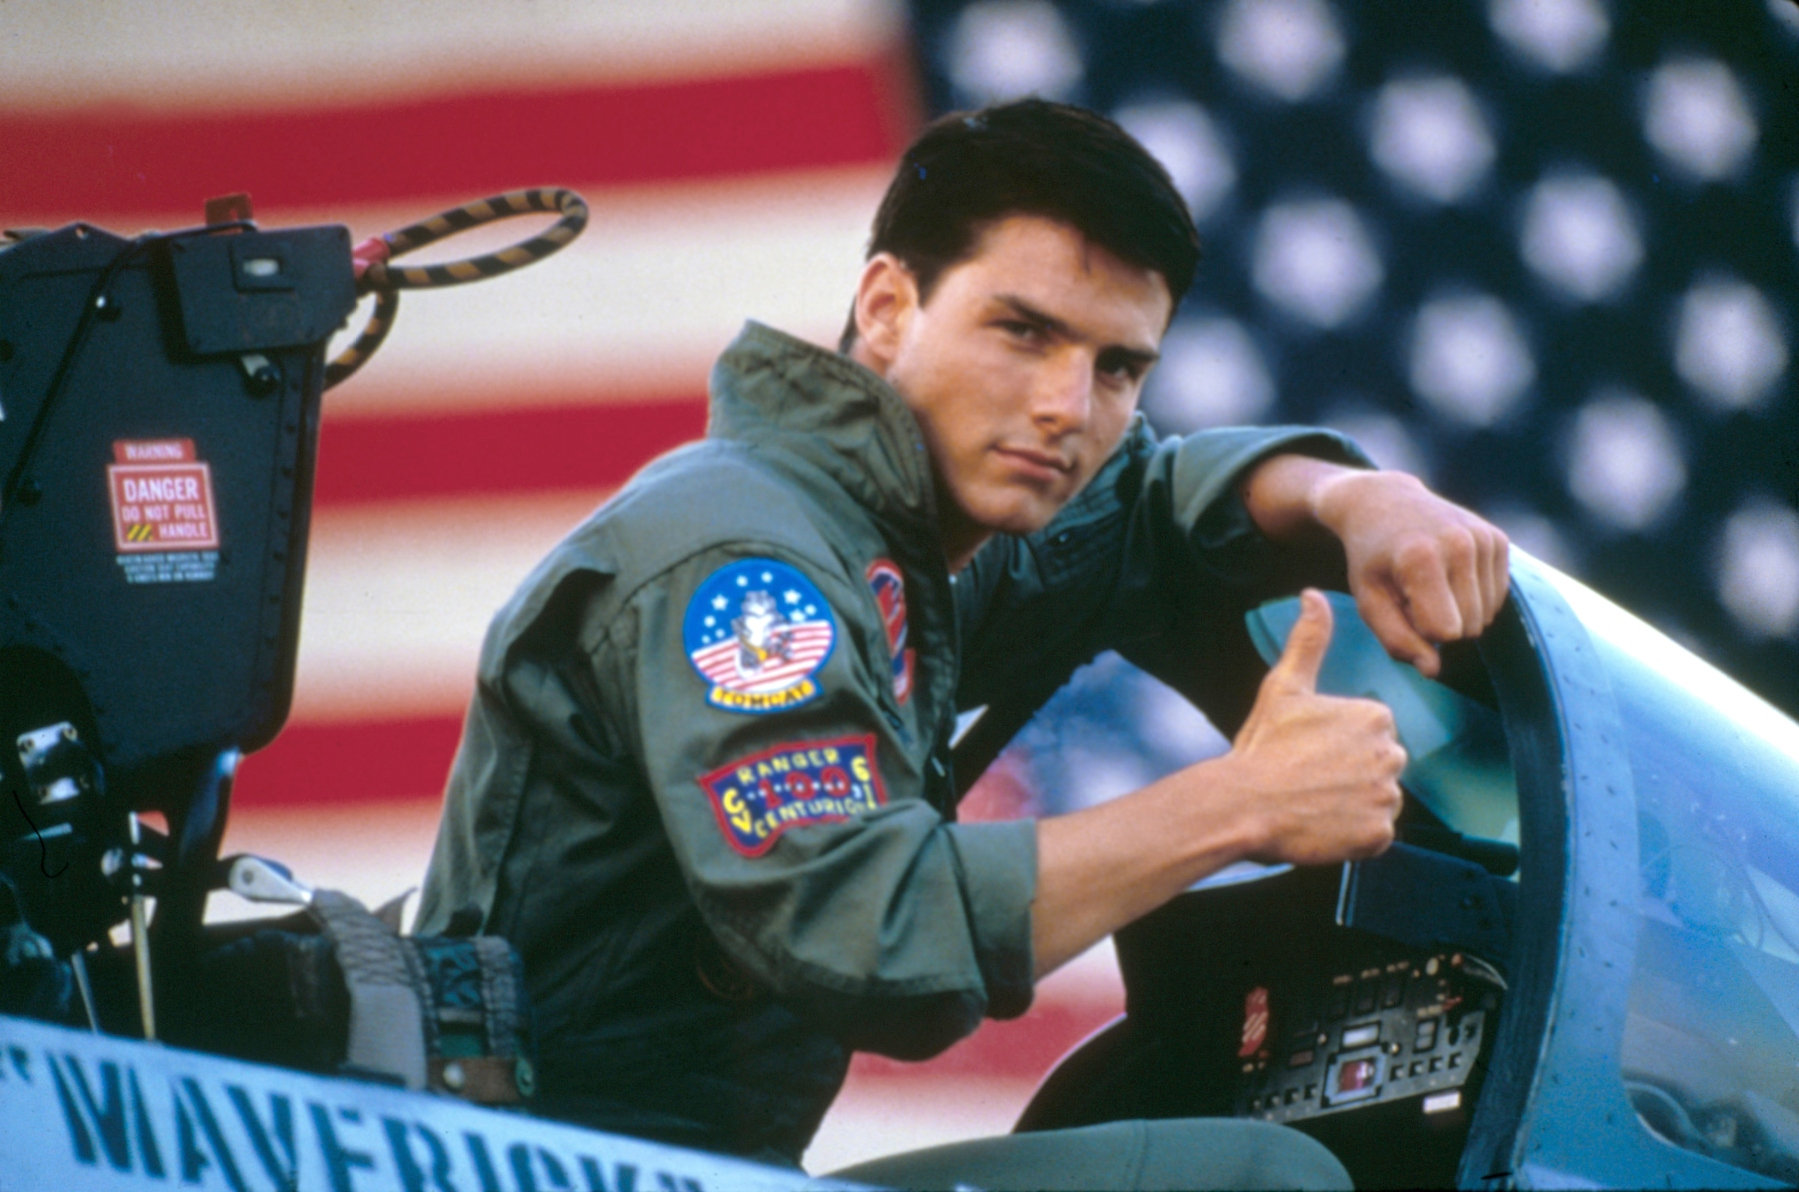 """Tom Cruise on the set of Top Gun, directed by Tony Scott. Photos from the set of the upcoming sequel """"Top Gun: Maverick"""" were recently posted to Instagram. (Photo by Paramount Pictures/Sunset Boulevard/Corbis via Getty Images)"""